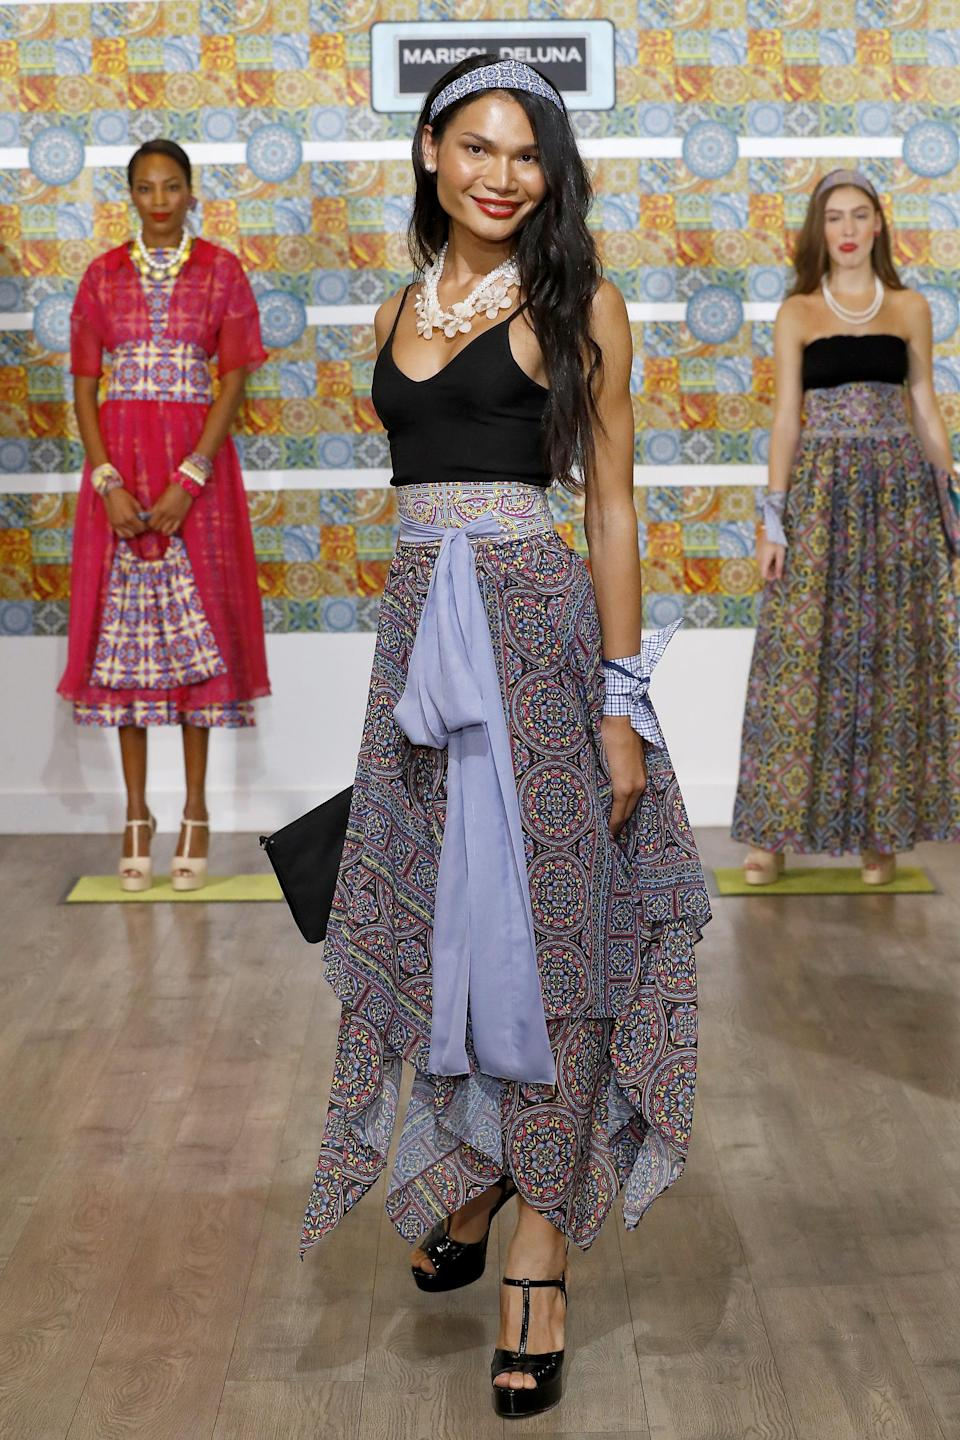 <p>MiMi, born in Thailand, was the first openly transgender model on <b>Project Runway</b> in 2019 and has been an advocate for the transgender community within the fashion industry. </p>